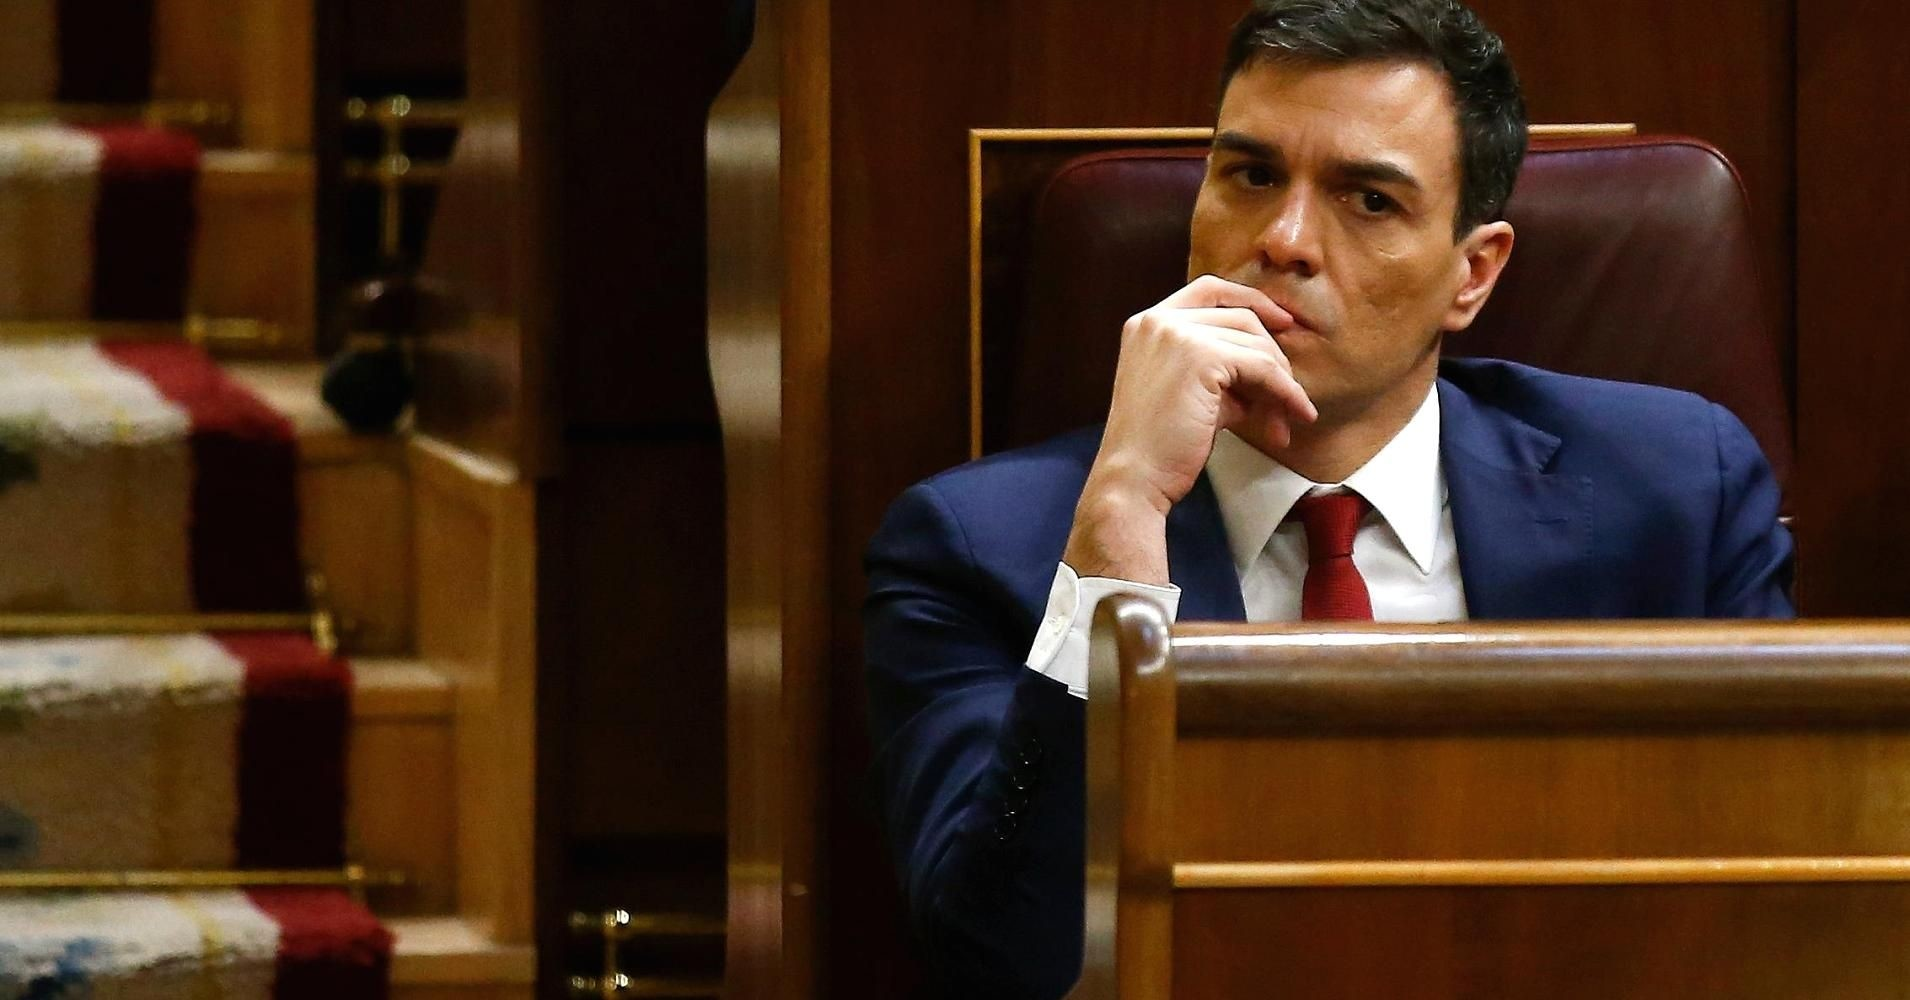 Spain's Socialist Party (PSOE) leader Pedro Sanchez attends an investiture debate at parliament in Madrid, Spain, March 2, 2016. (REUTERS Photo)